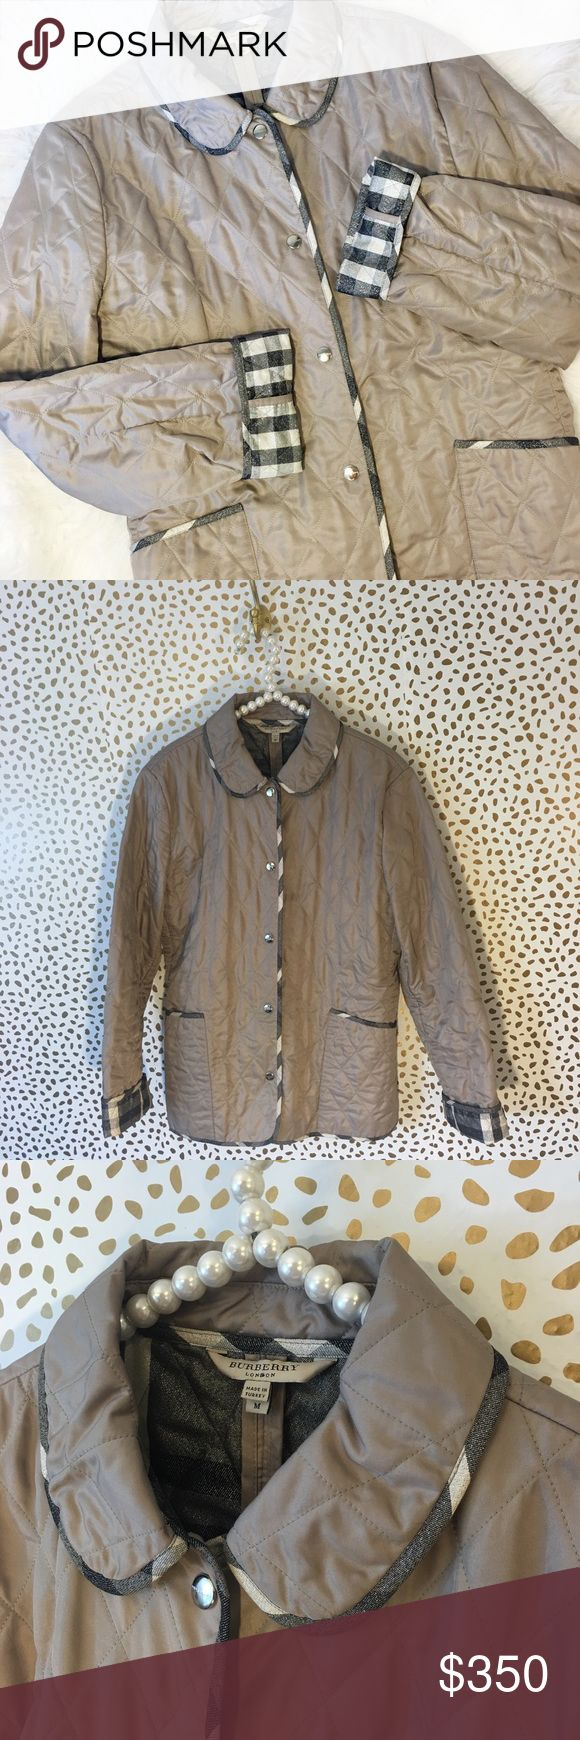 Burberry London Taupe Shimmer Check Quilted Coat SO amazing and perfect for fall and winter! Like new condition. Size medium. Snap button closure. Taupe-grey-khaki tone with grey black and white SPARKLY lining and trim! Very rare and sold out. Guaranteed authentic! Please ask any and all questions. No trades!! Burberry Jackets & Coats